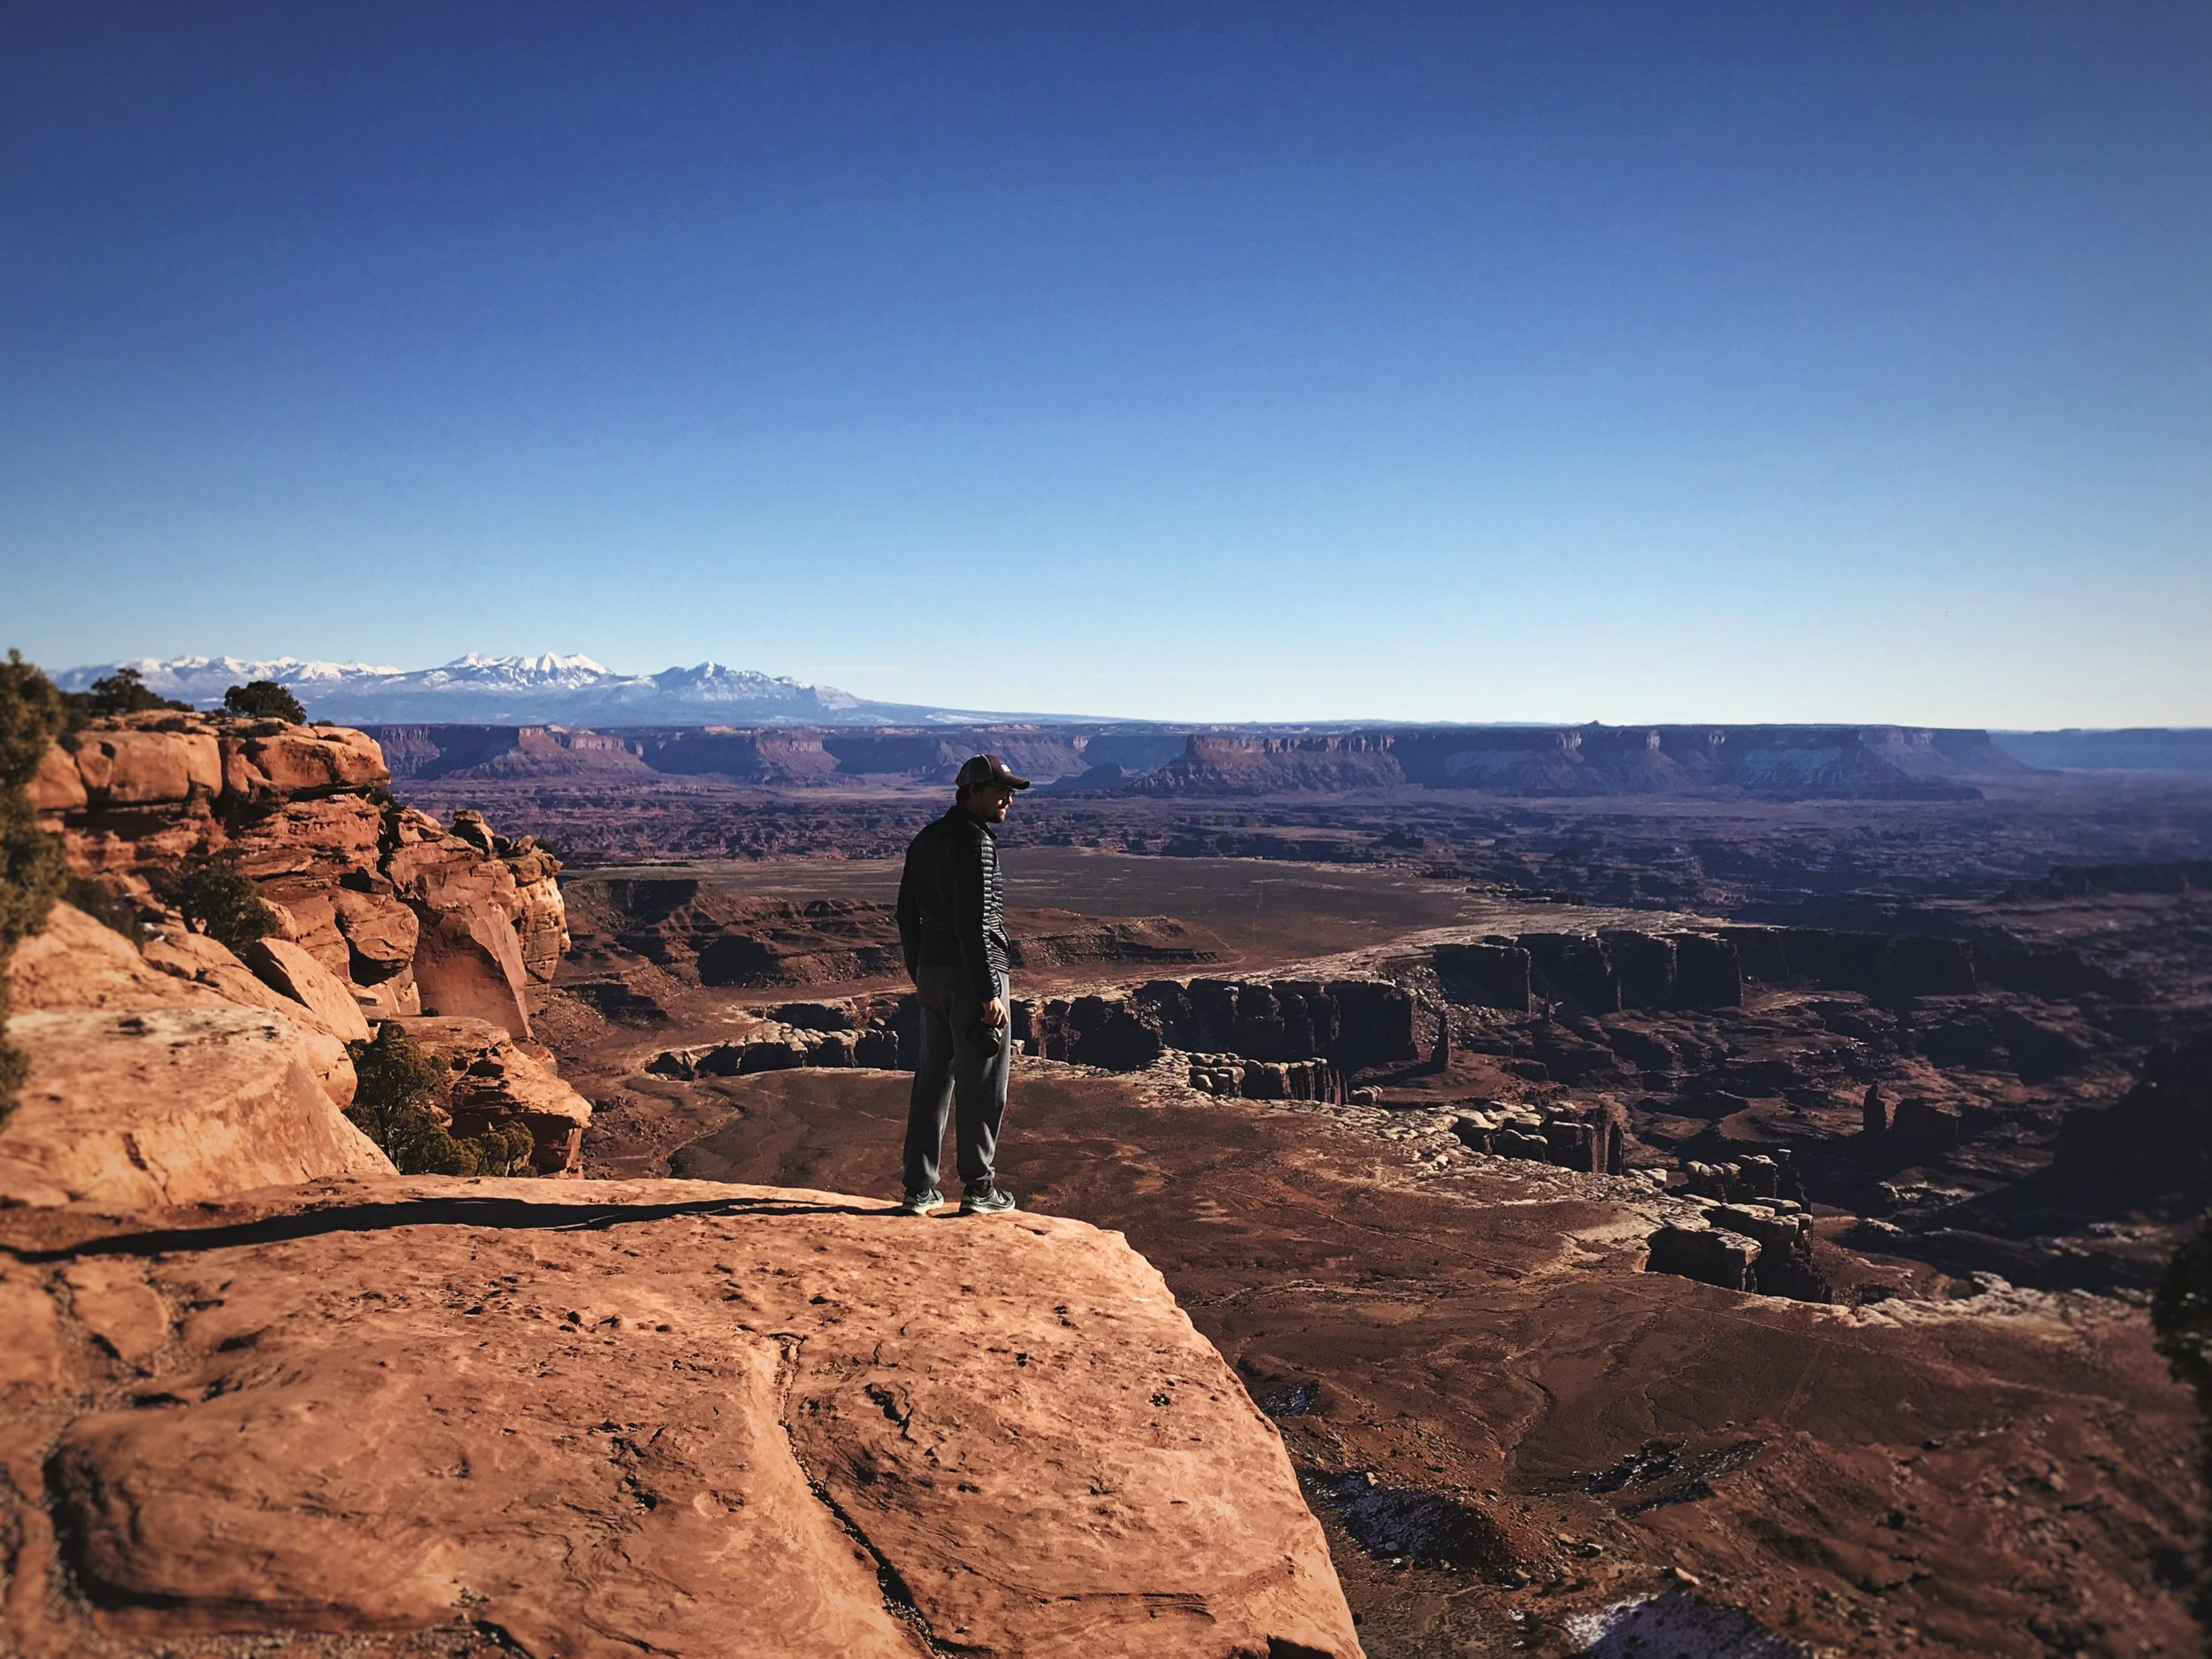 Ian looks out over the landscape of Canyonlands National Park.